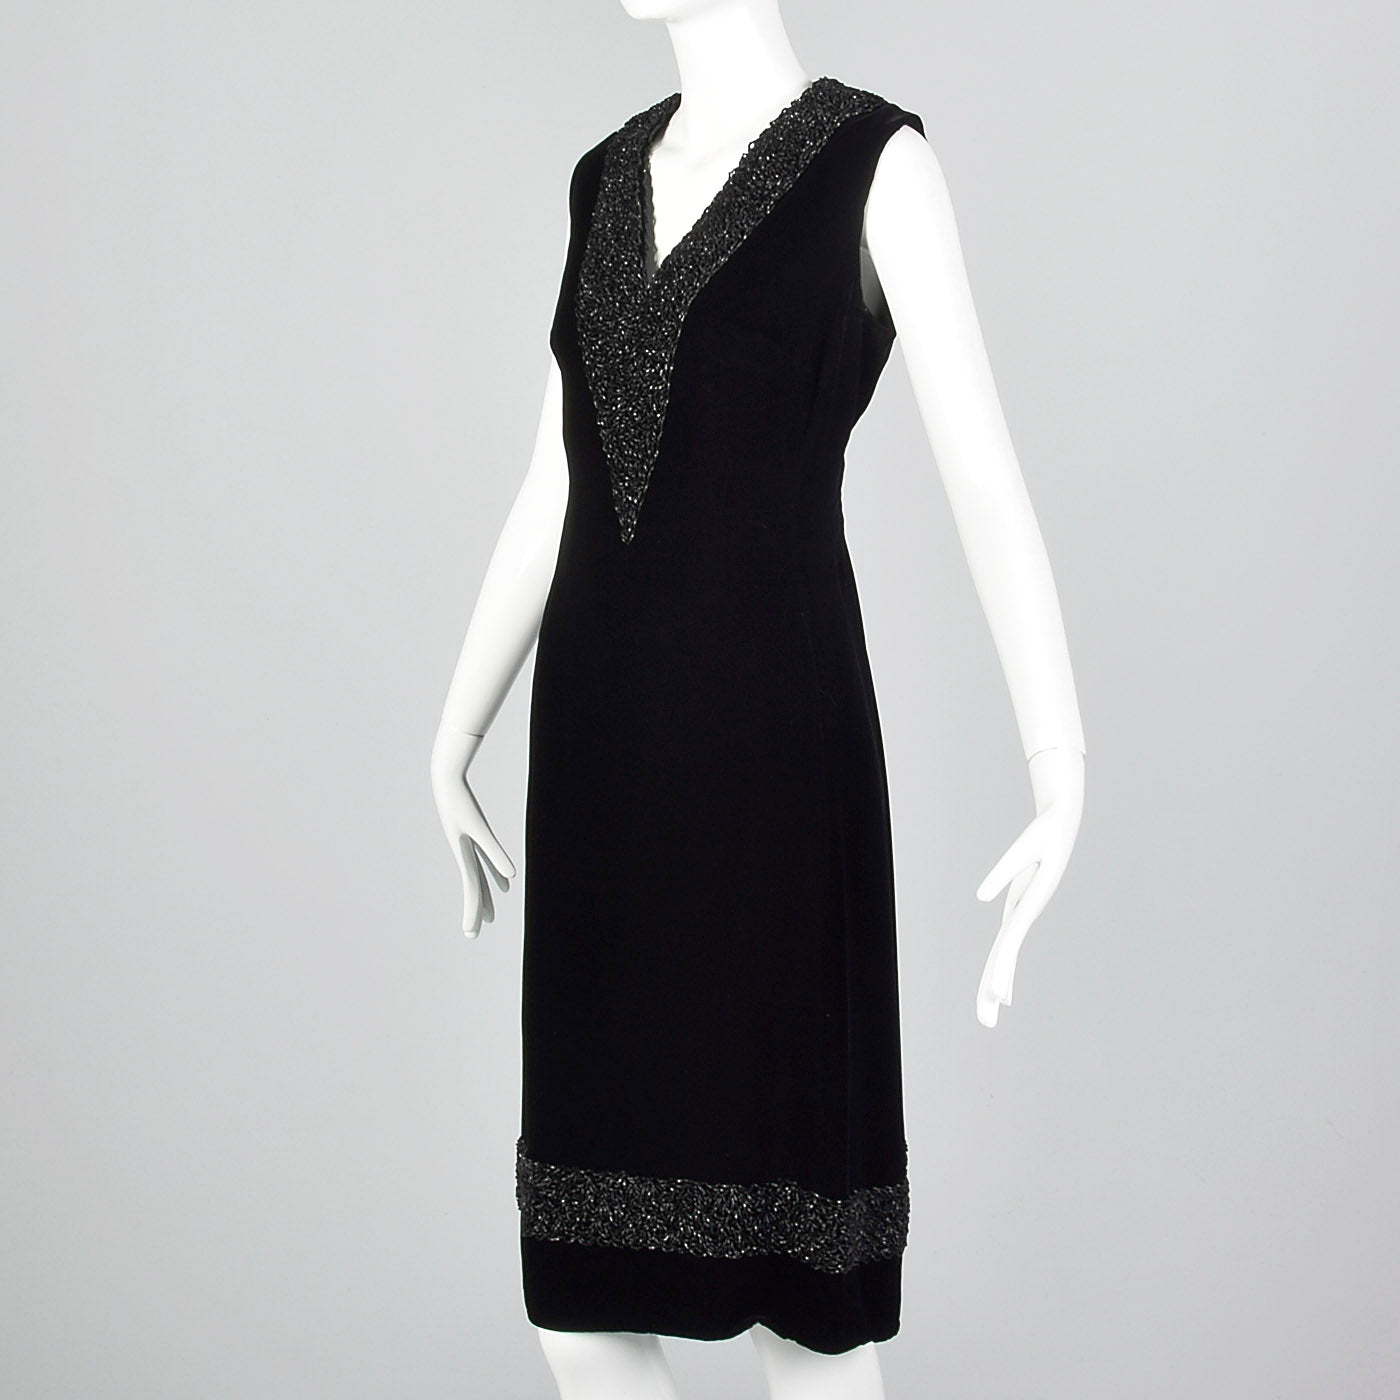 1960s Black Velvet Shift Dress with Heavy Beading